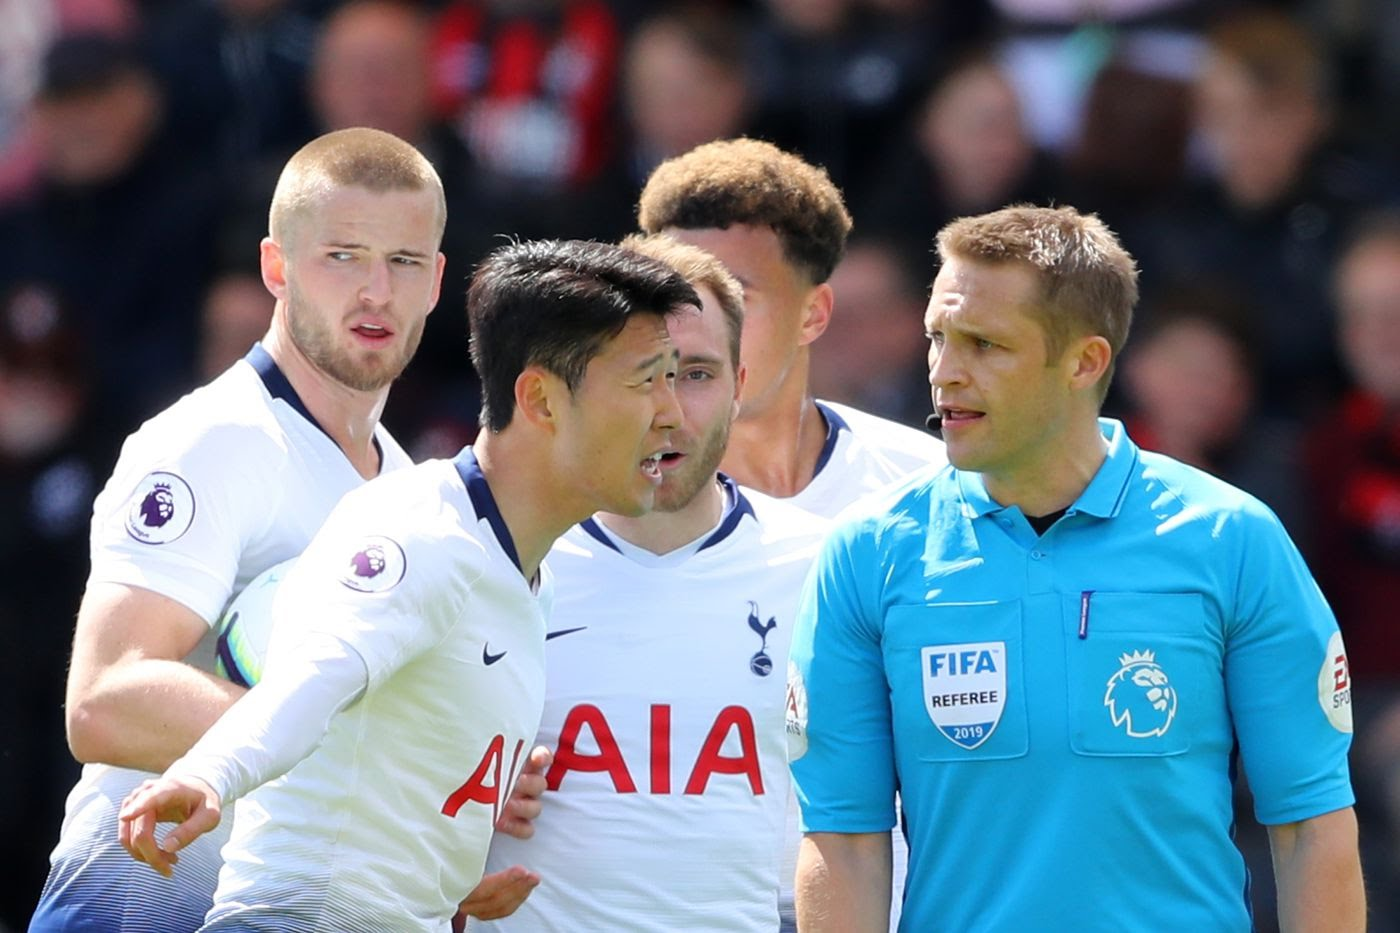 Bournemouth 1 - 0 Tottenham Hotspur: Red cards ultimately doom Spurs